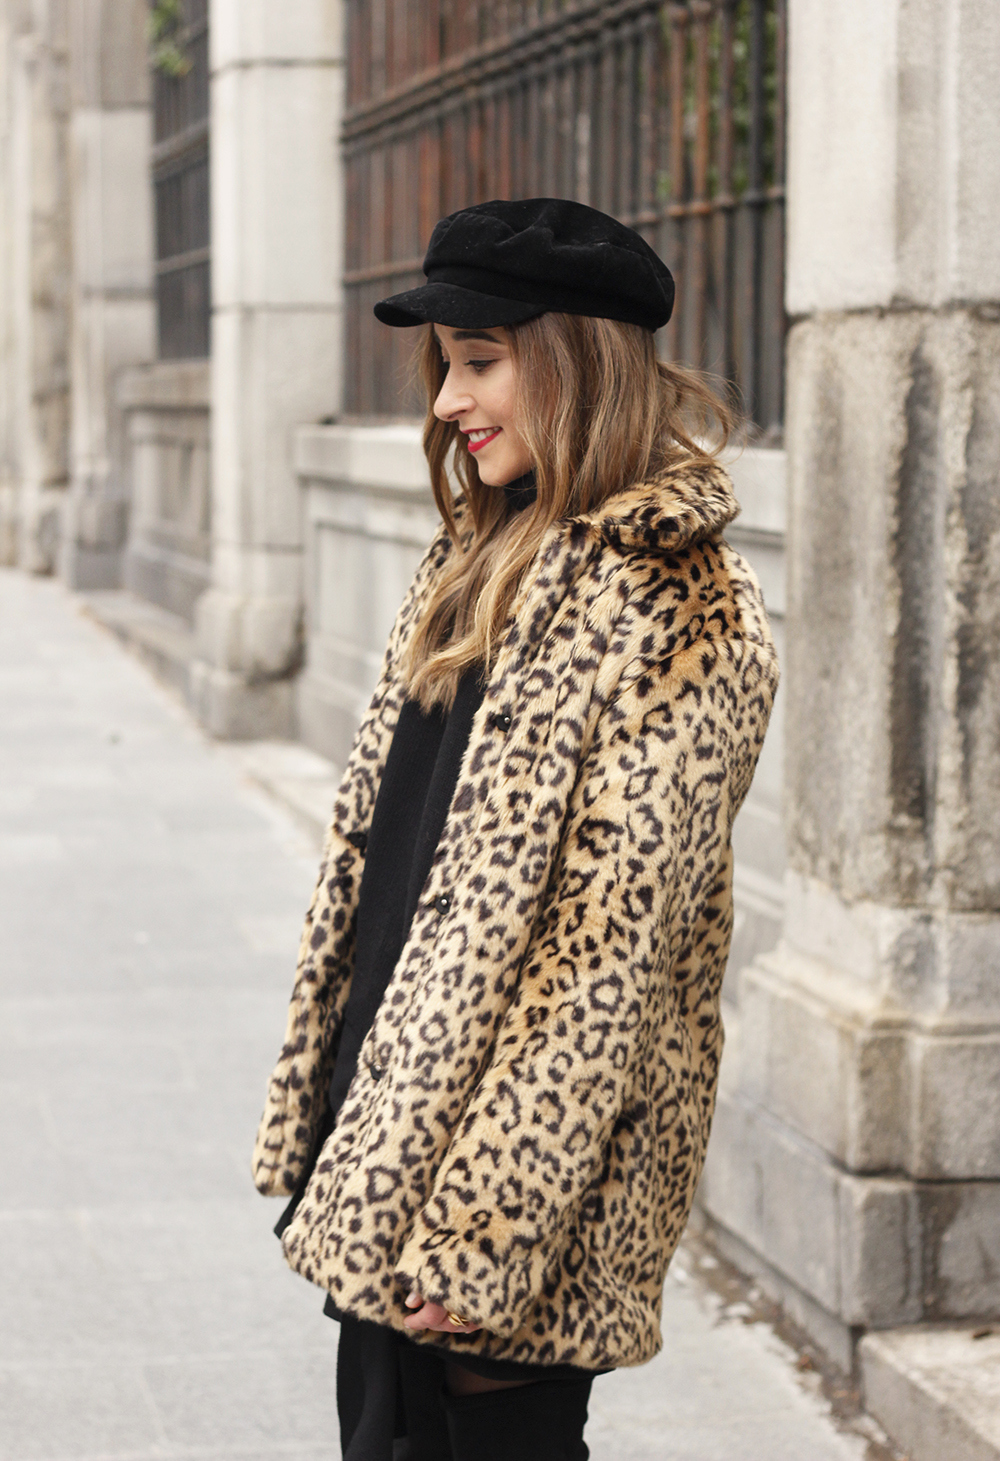 leopard coat black outfit over the knee boats givenchy black cap winter outfit10